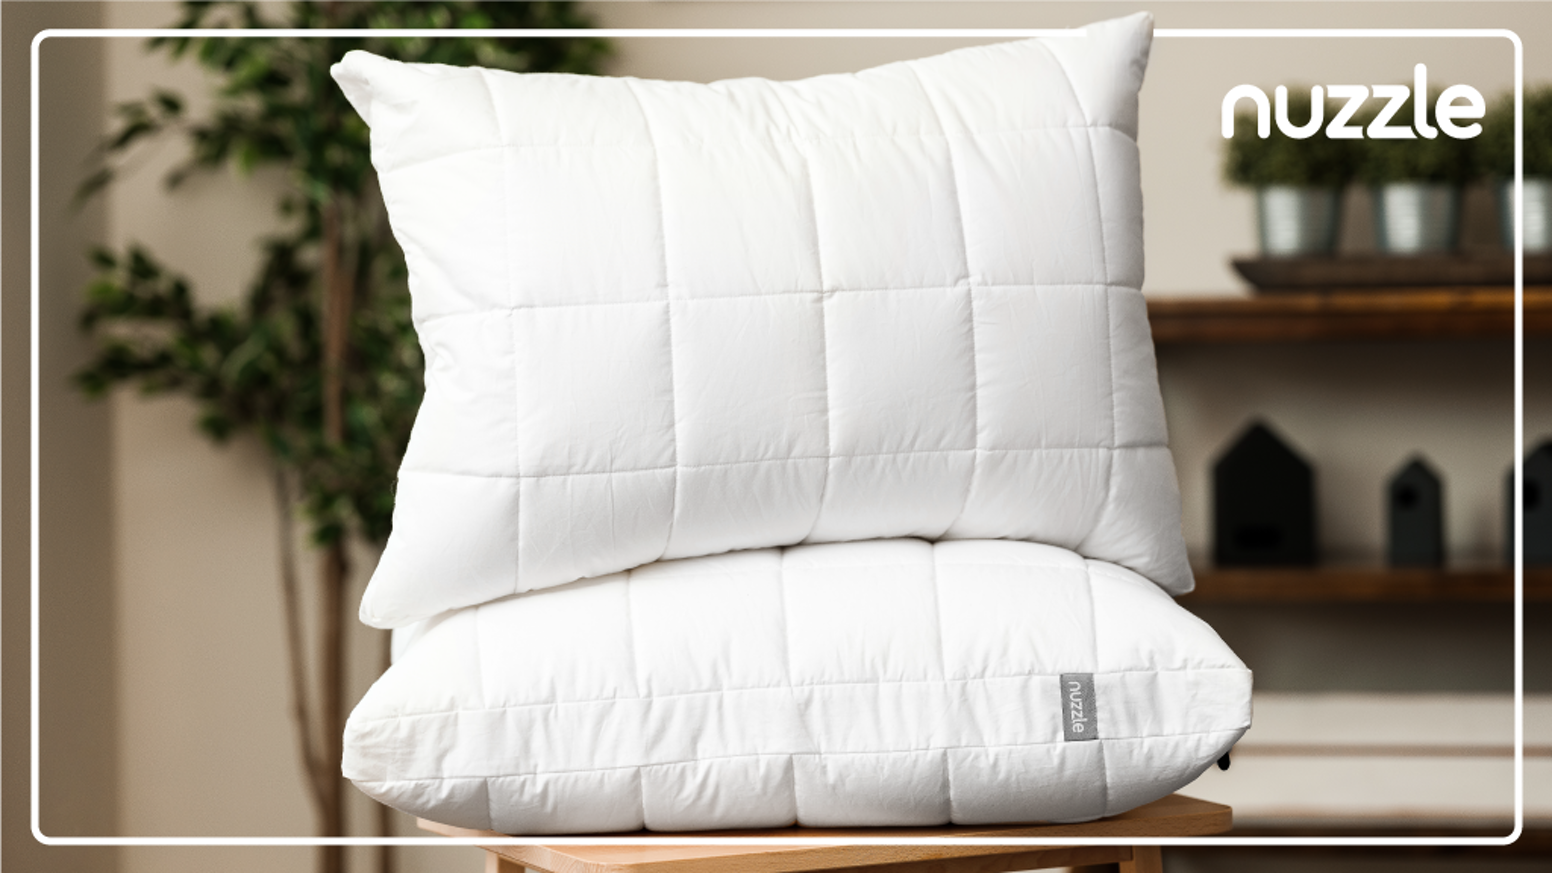 One pillow for every sleeping position. With Nano-coil and astronaut-inspired tech, you can now totally customize your sleep.